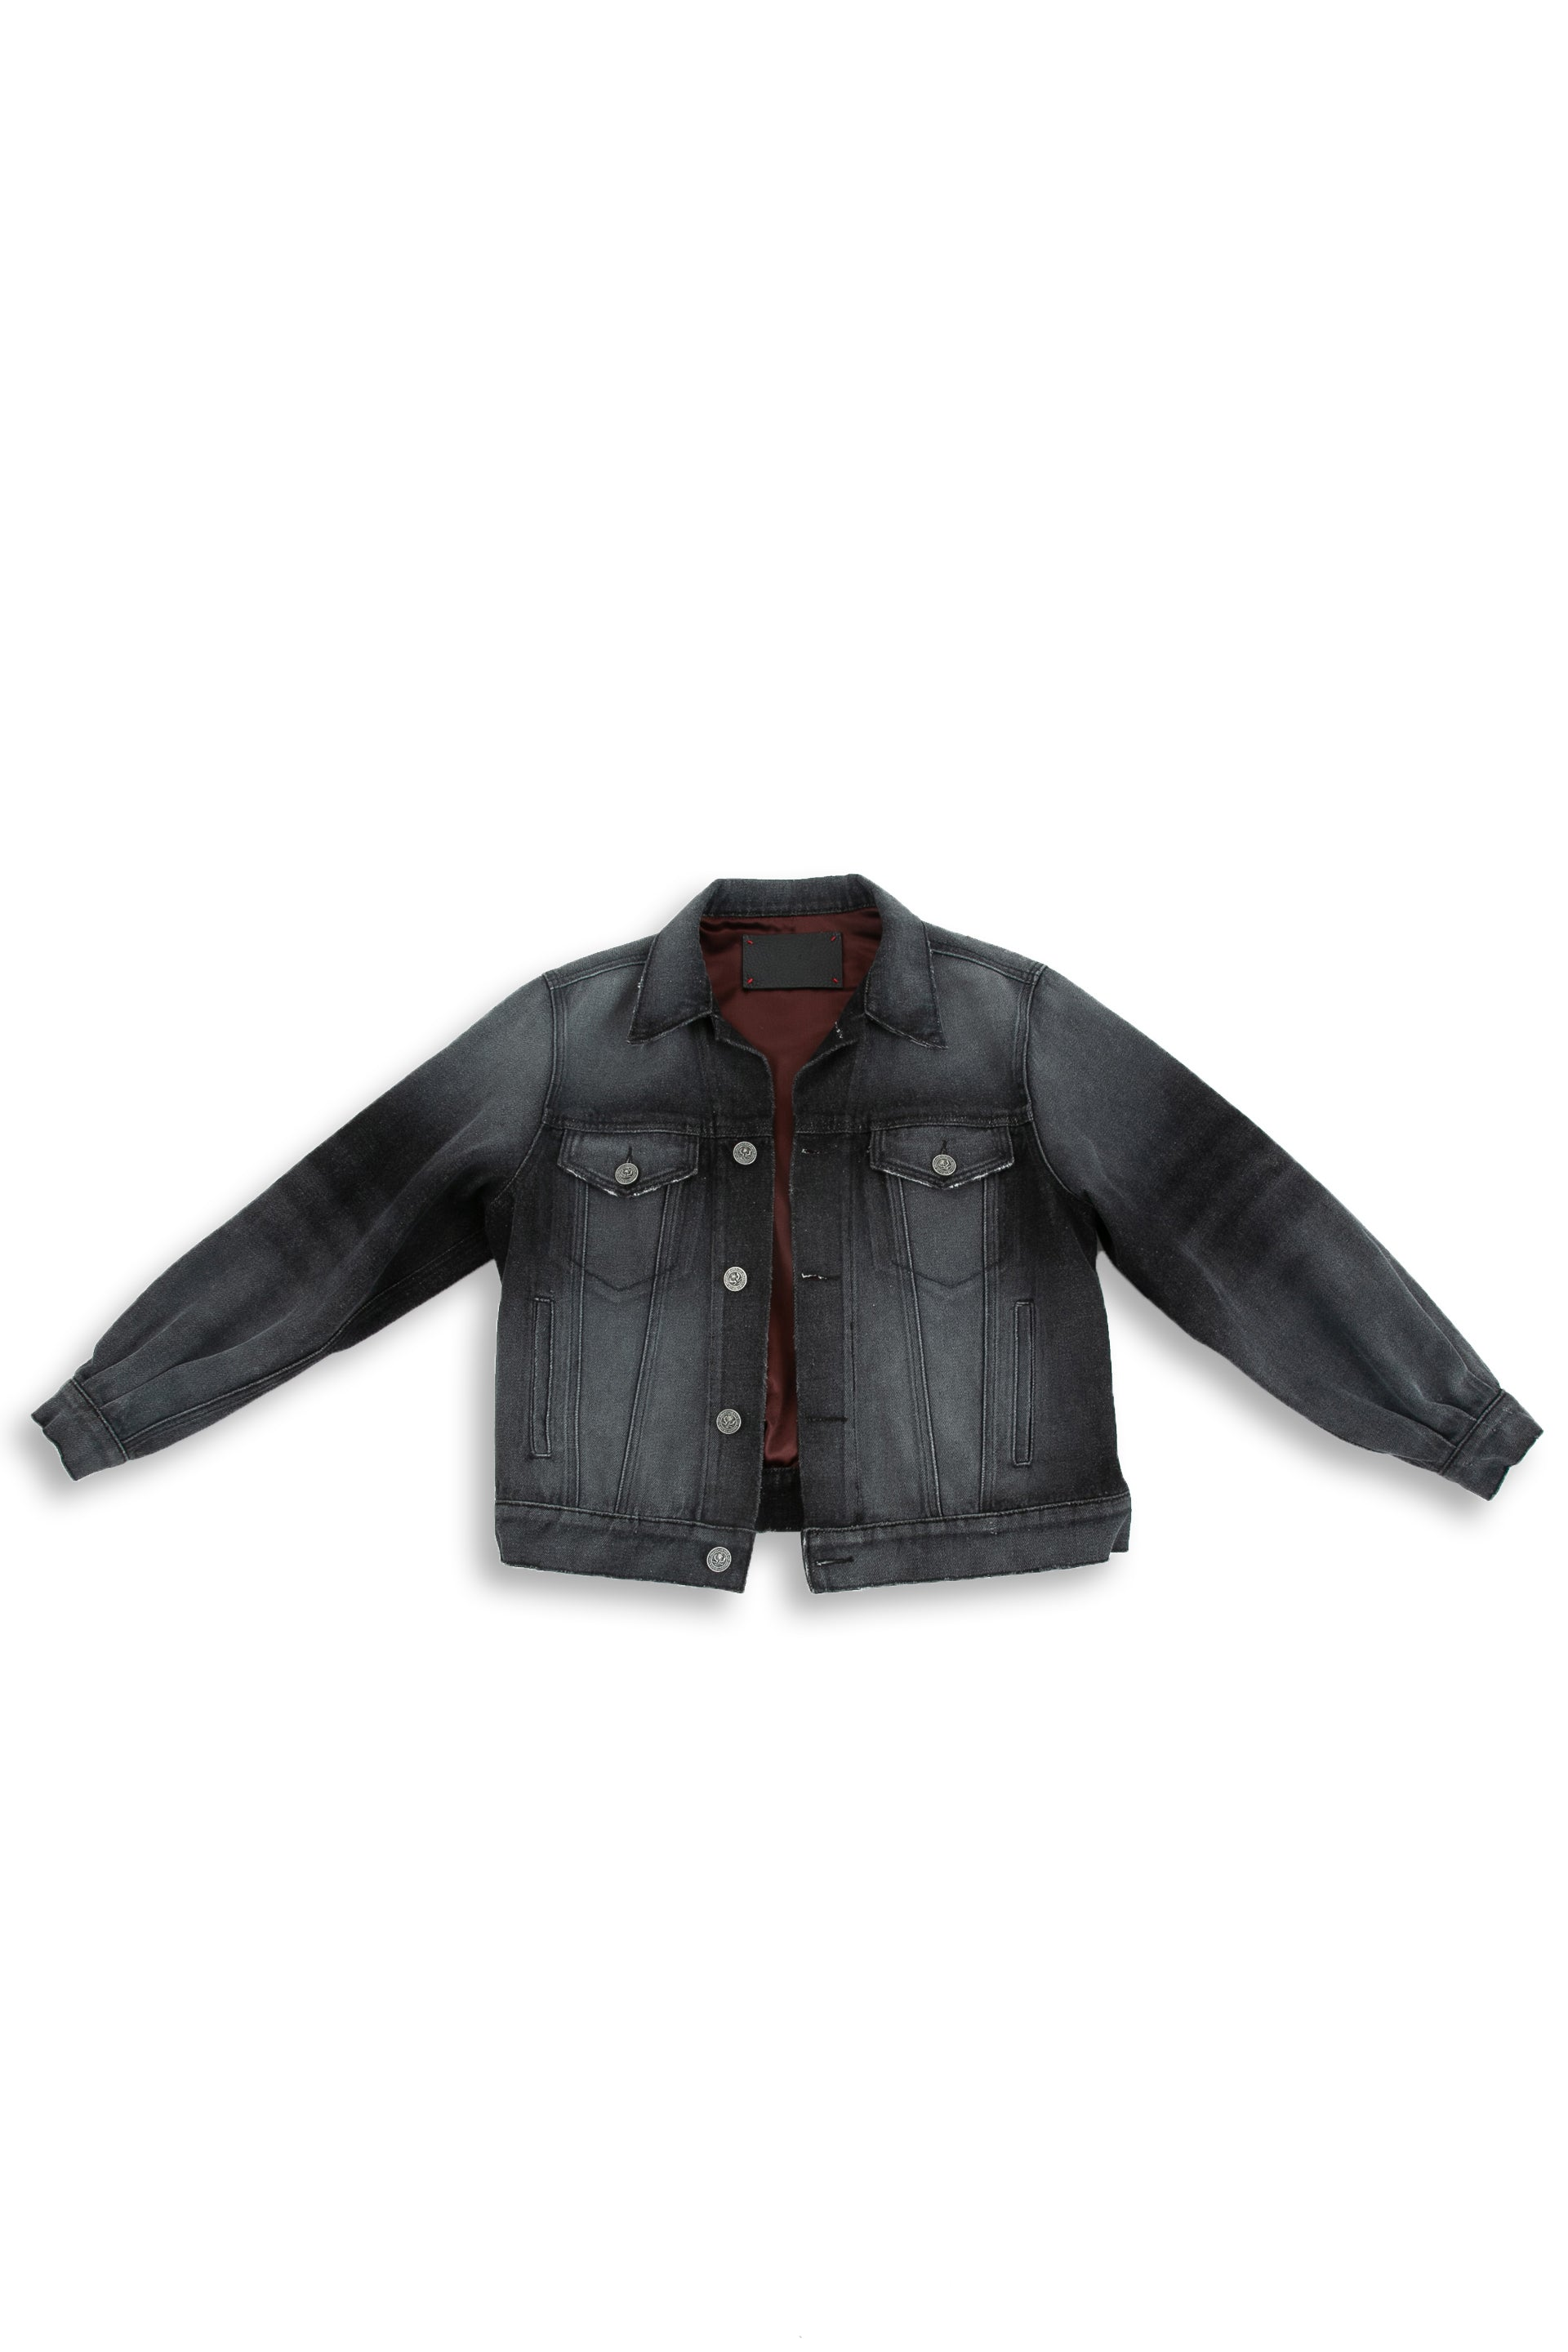 Front of Black Truffle Denim jacket